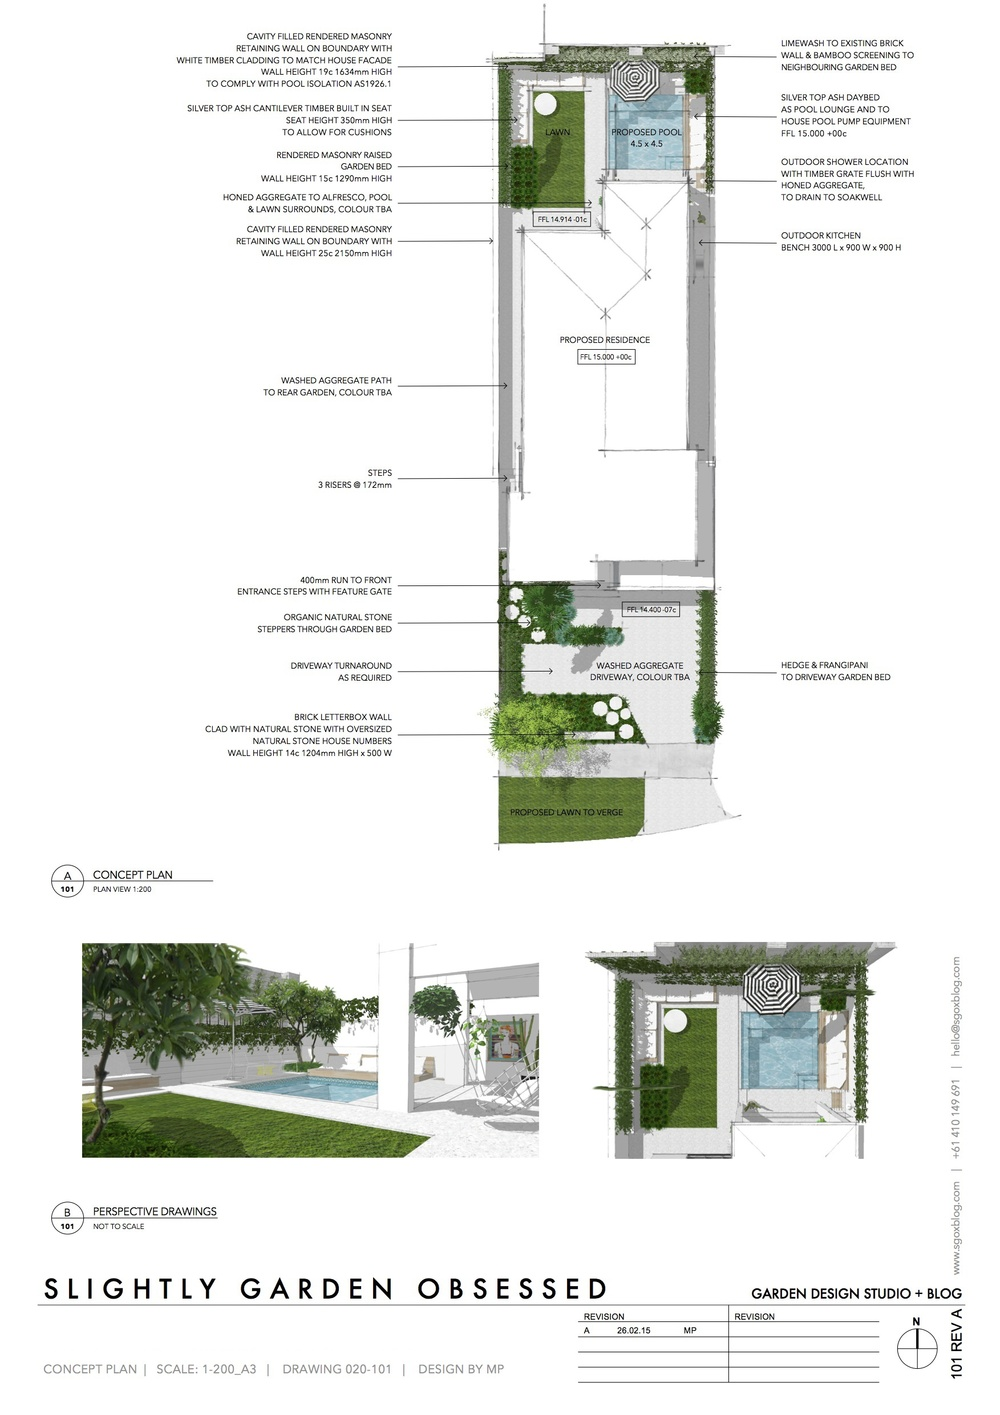 swanbourne project | slightly garden obsessed